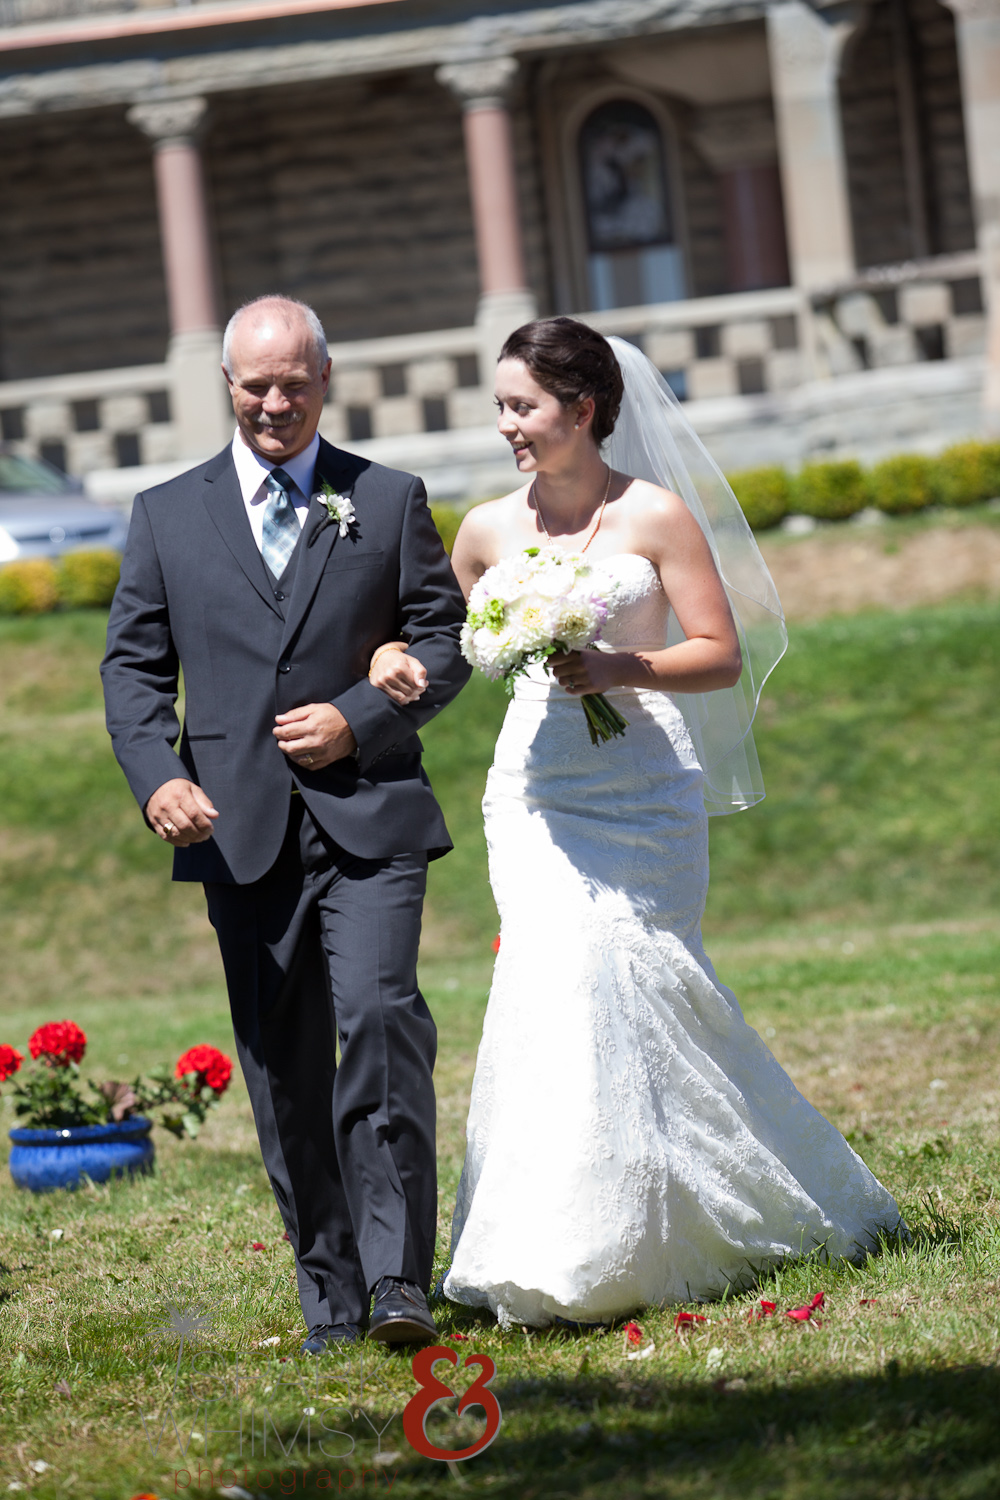 CSWedding (1116 of 1215).jpg